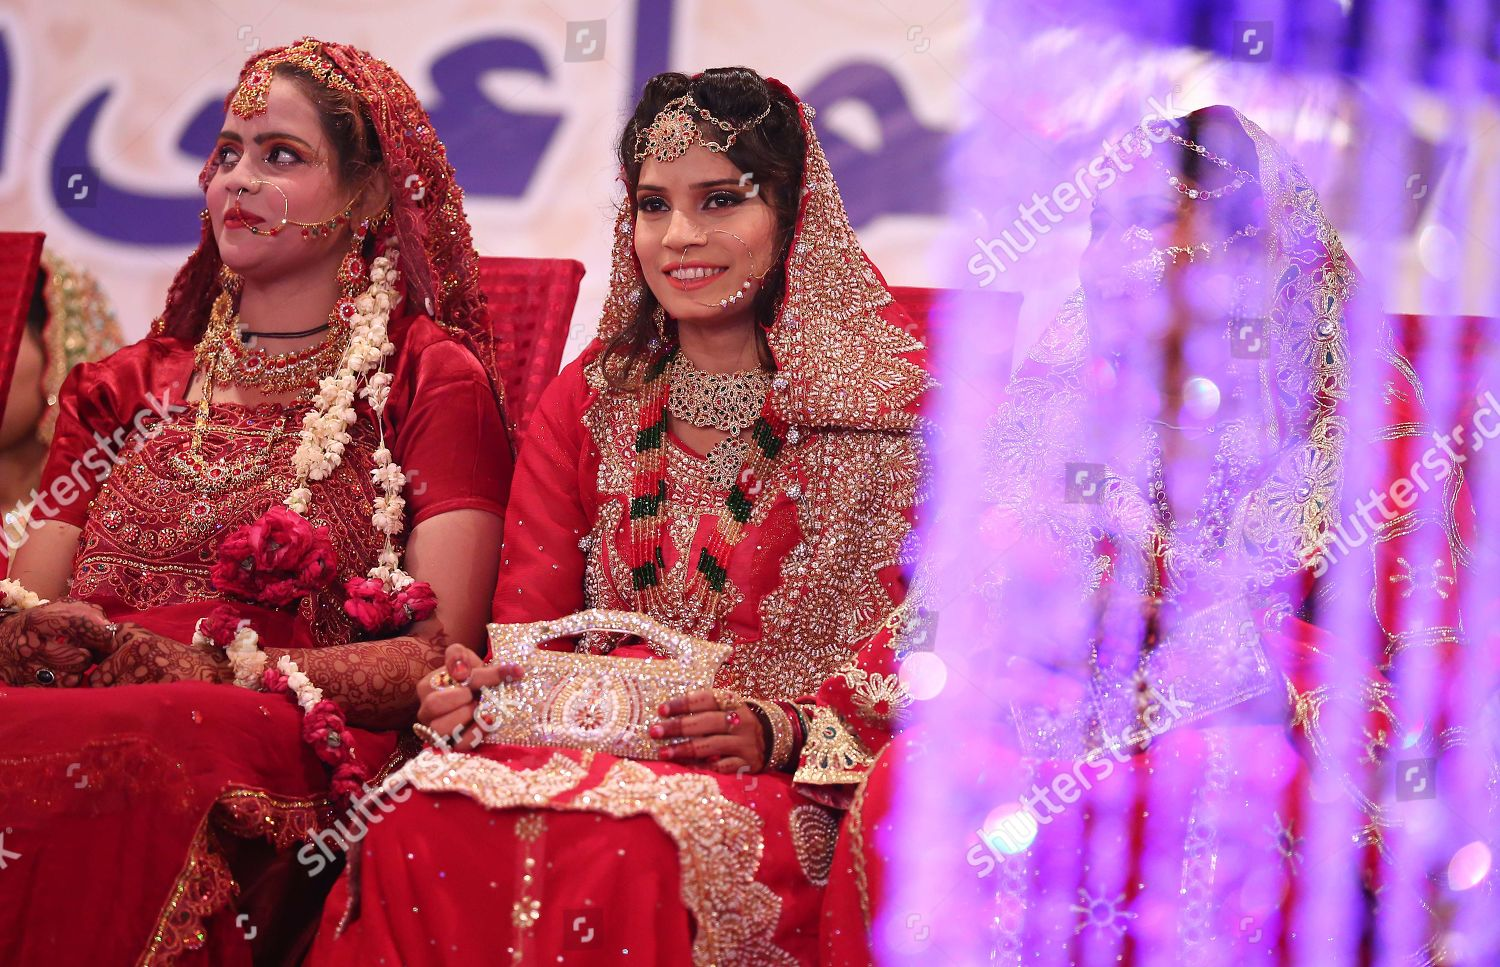 Pakistani brides attend their wedding during mass Editorial Stock